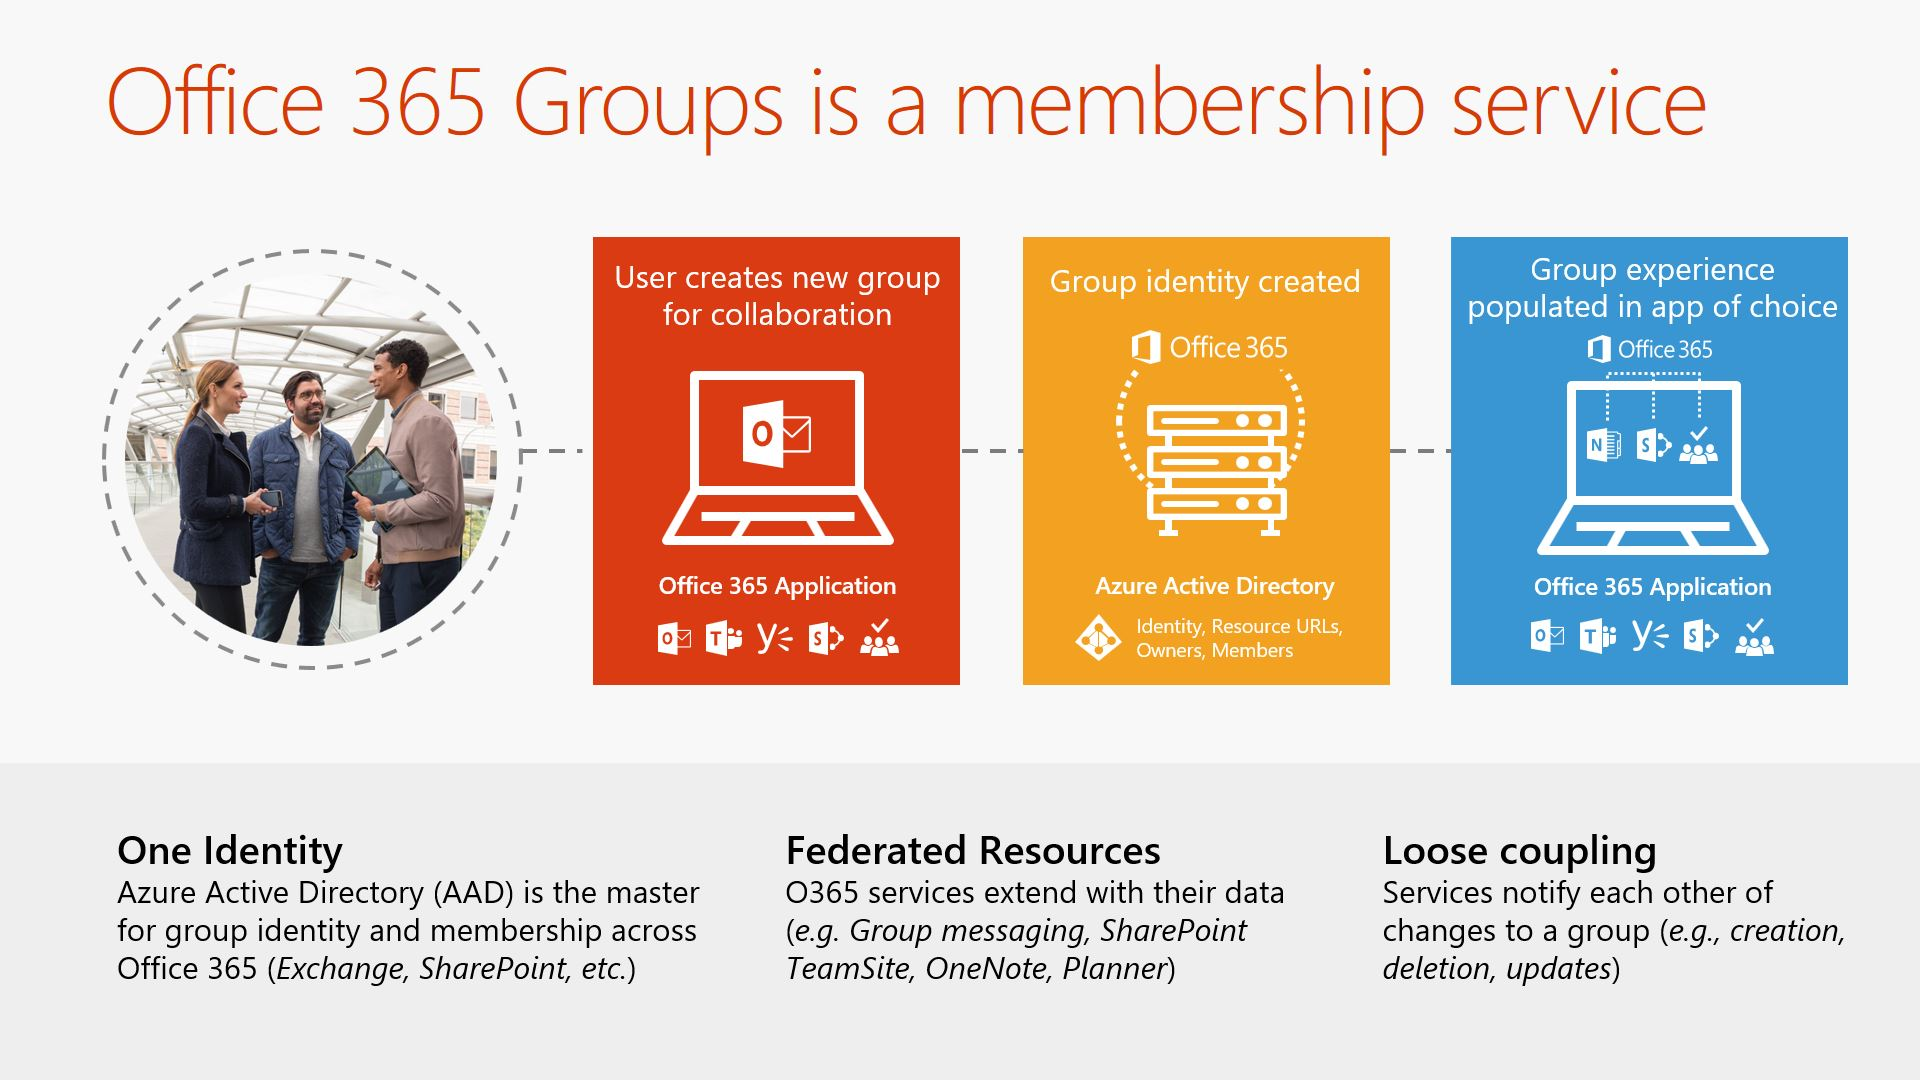 Attractive Webinar Slide: Office 365 Groups Is A Membership Service